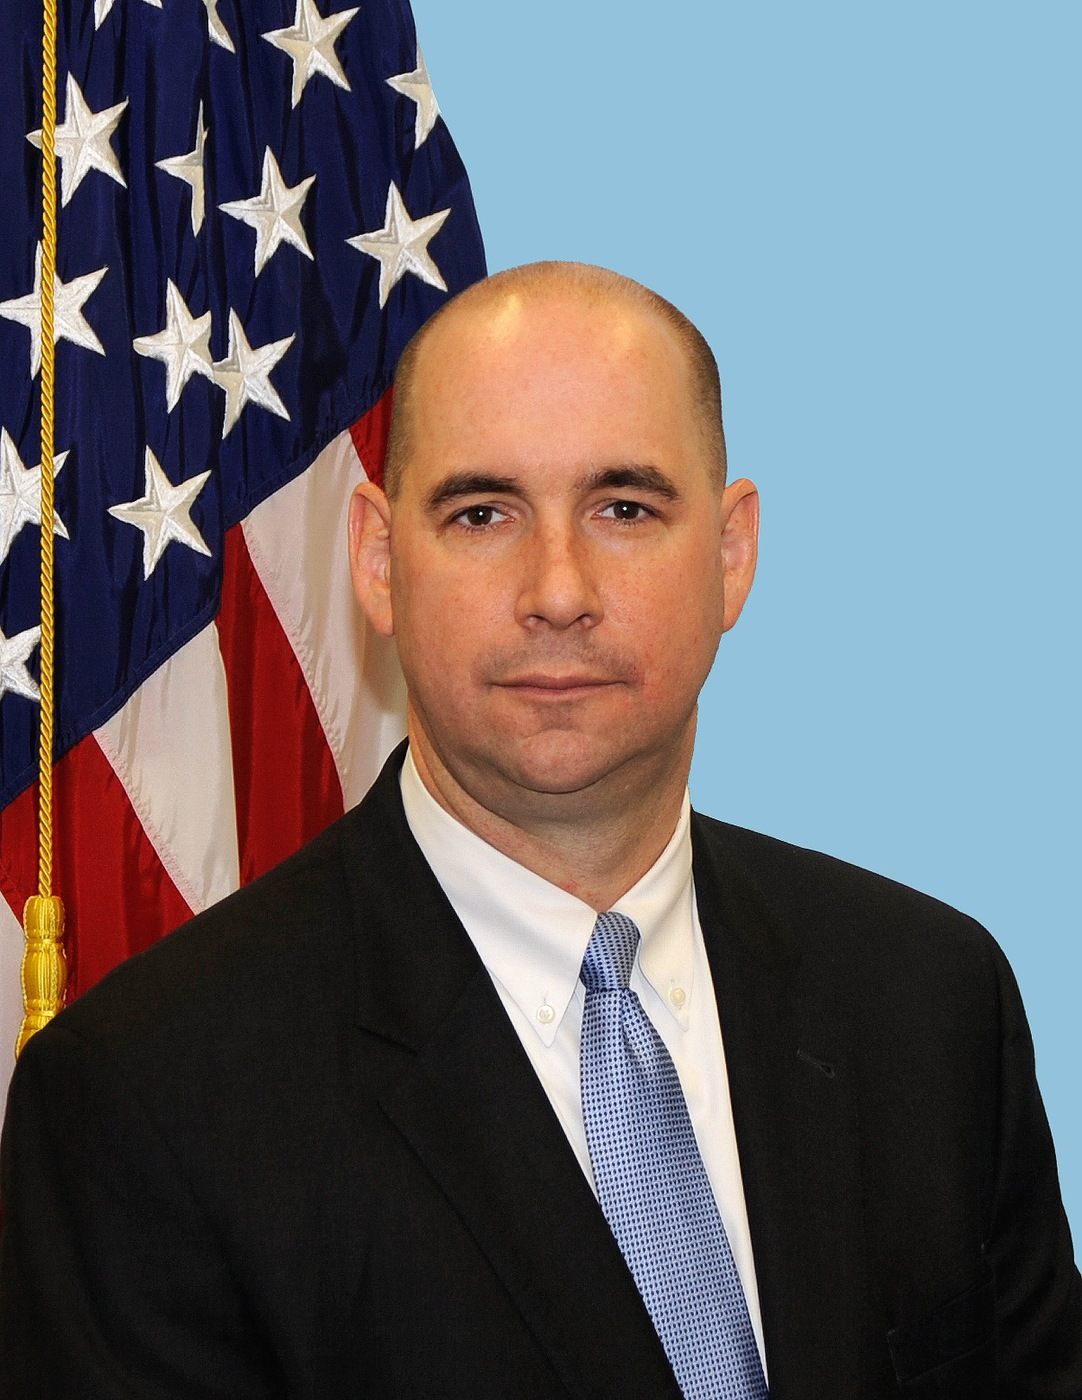 Director James B. Comey named William F. Sweeney, Jr. assistant director in charge of the FBI's New York Field Office in July 2016.